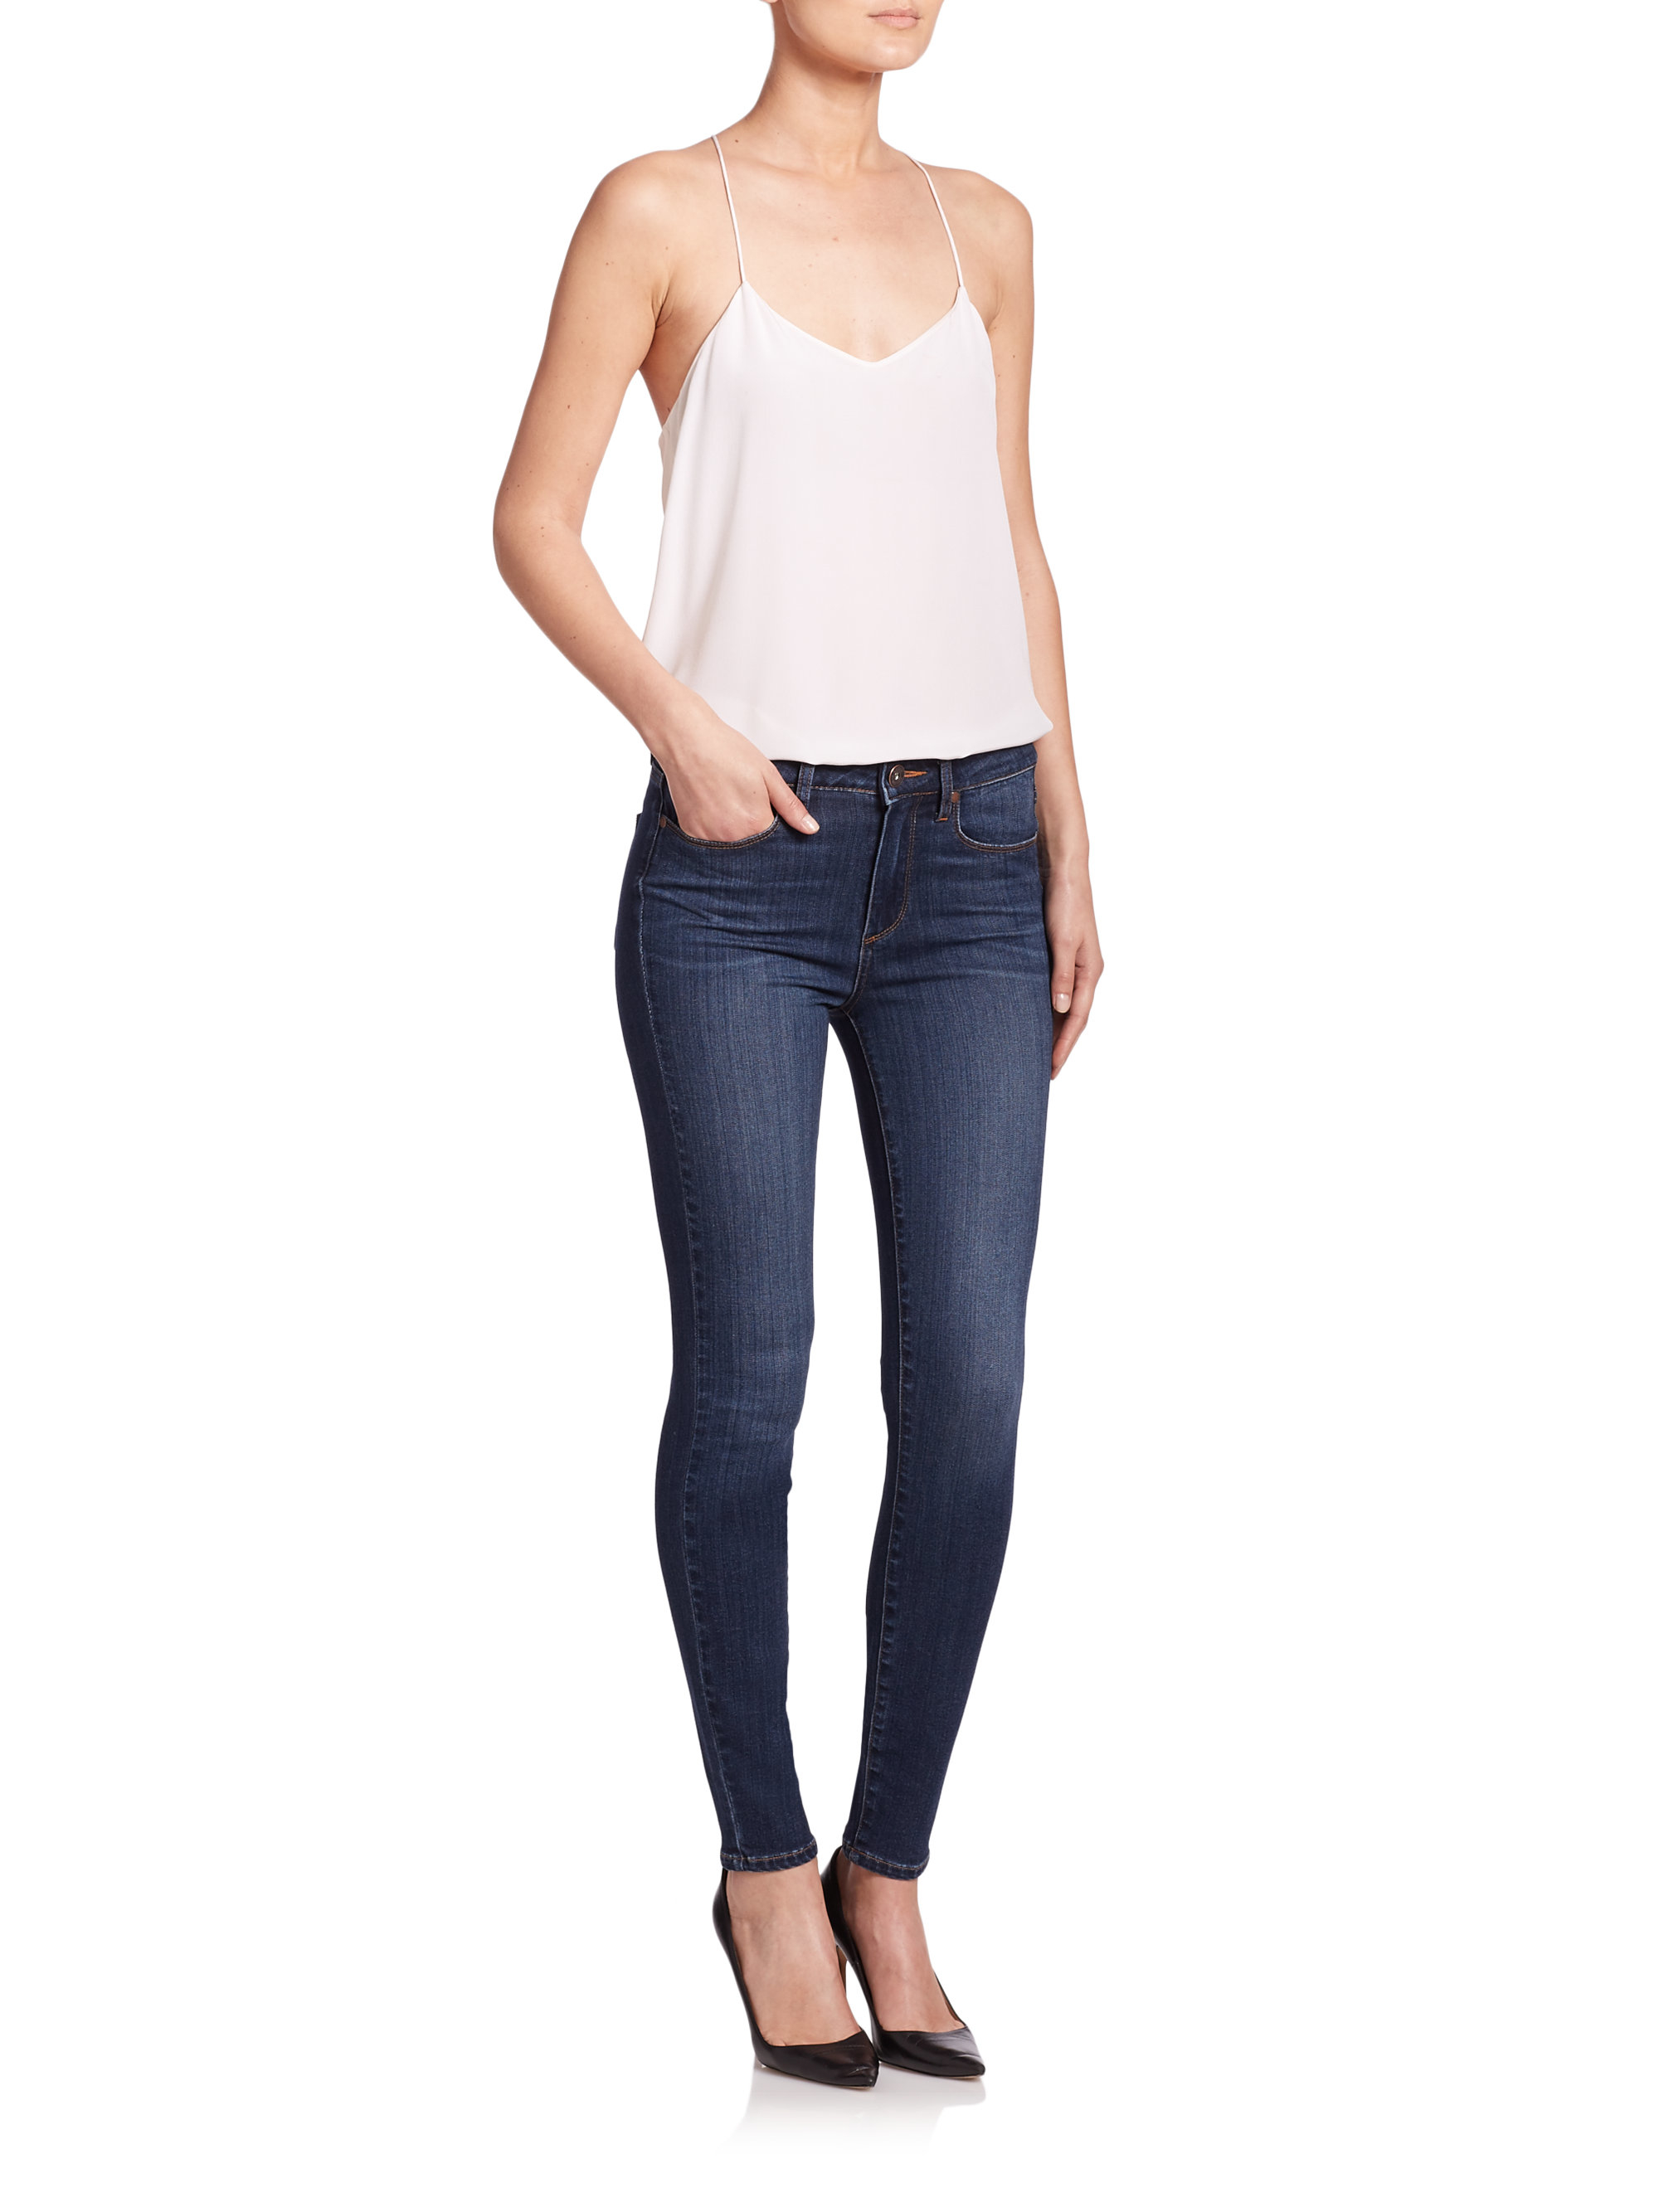 Clearance Really Paige Hoxtin high waist skinny jeans Free Shipping Countdown Package Collections Sale Online Outlet Store Locations Cheap Footlocker xhxx6WevM